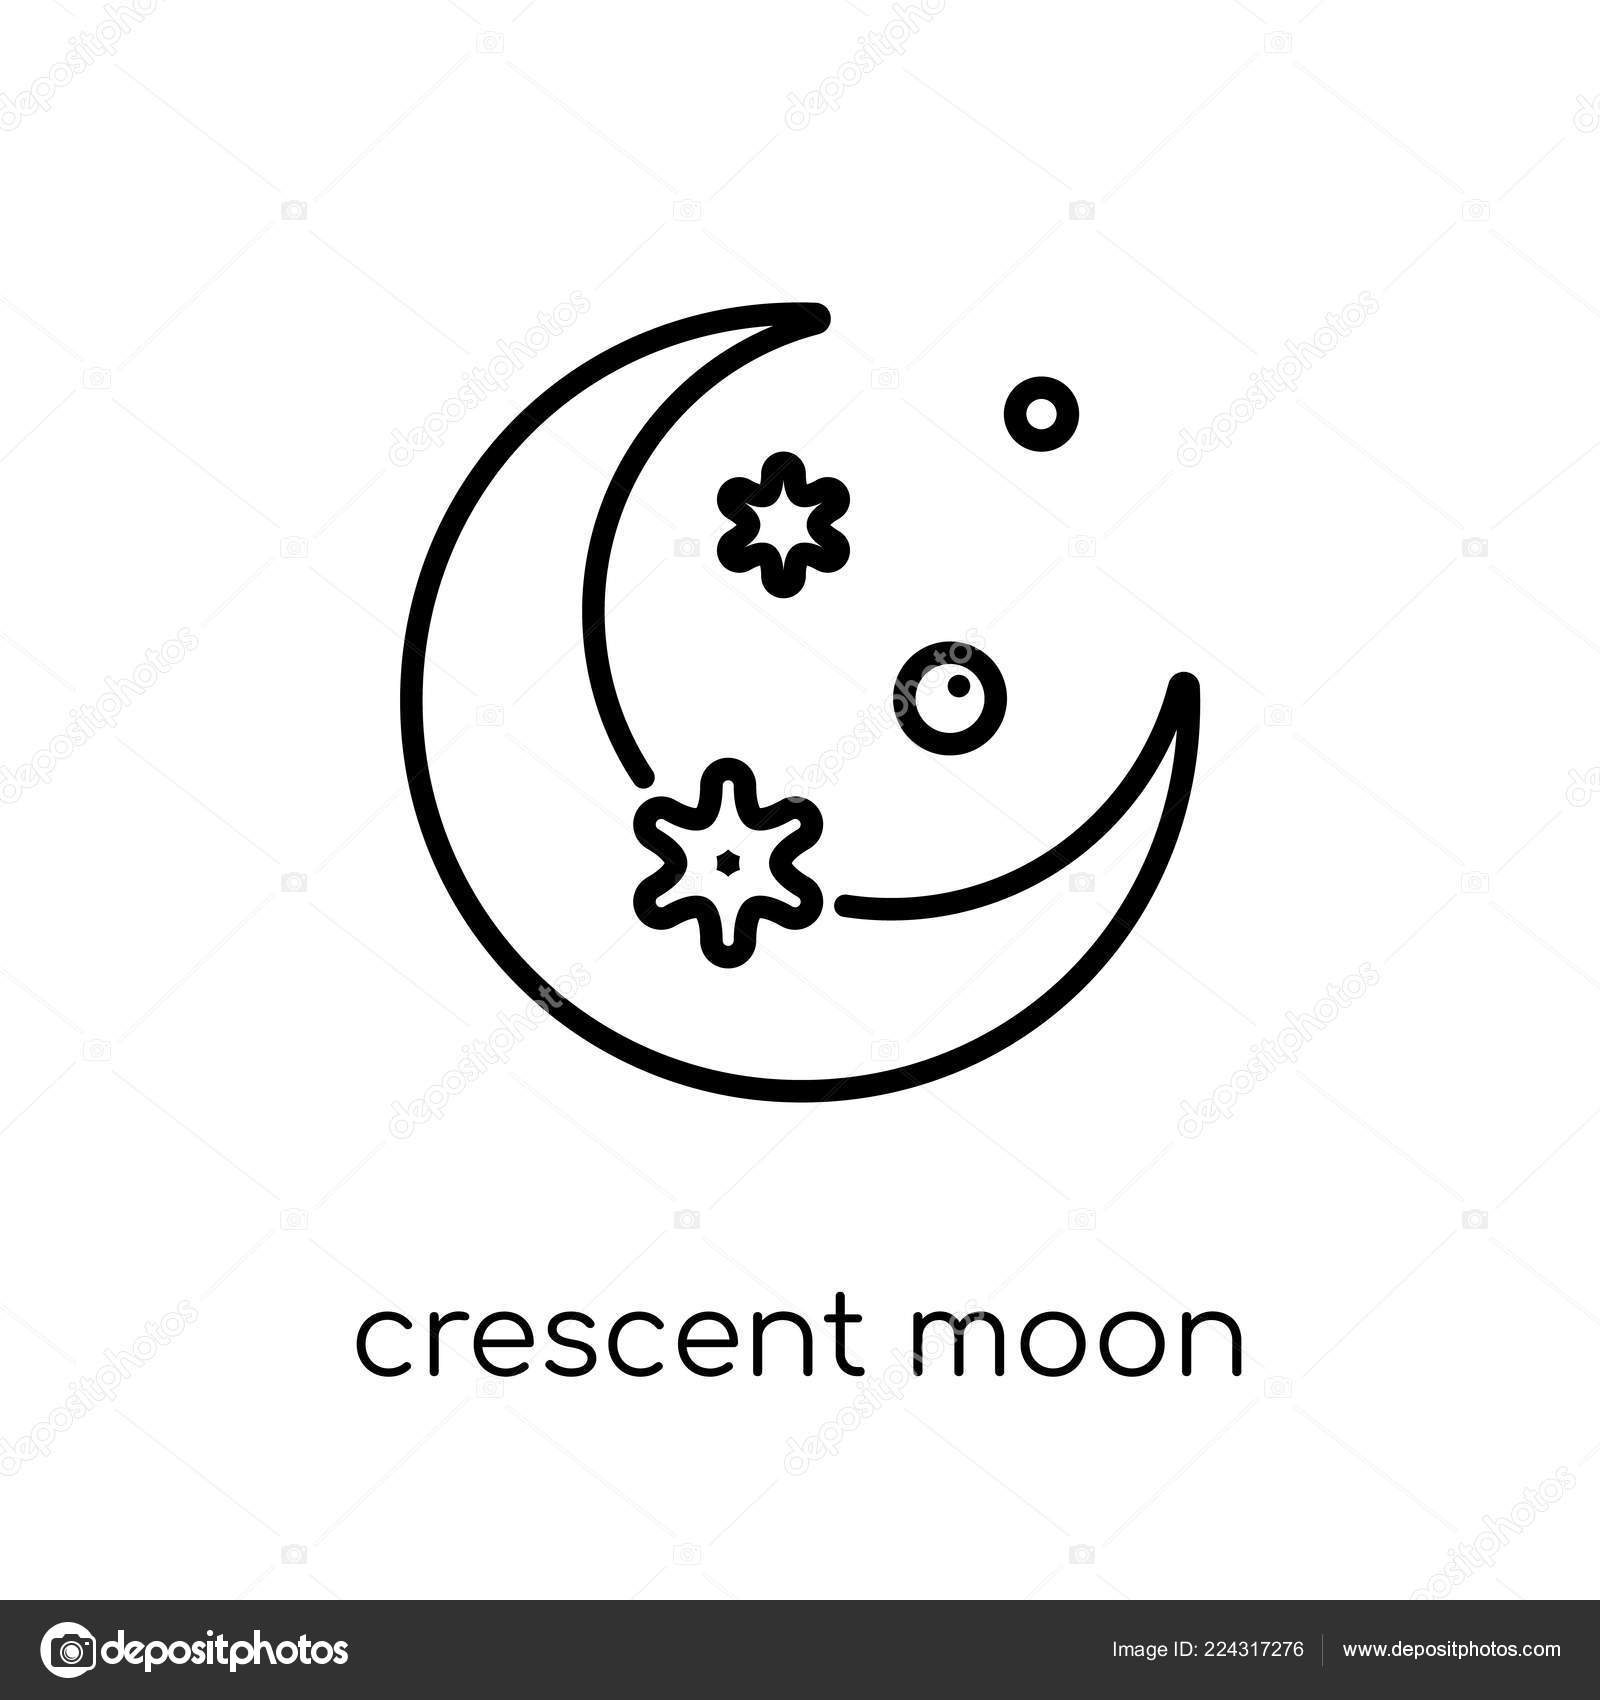 crescent moon icon trendy modern flat linear vector crescent moon stock vector c tvectoricons 224317276 depositphotos